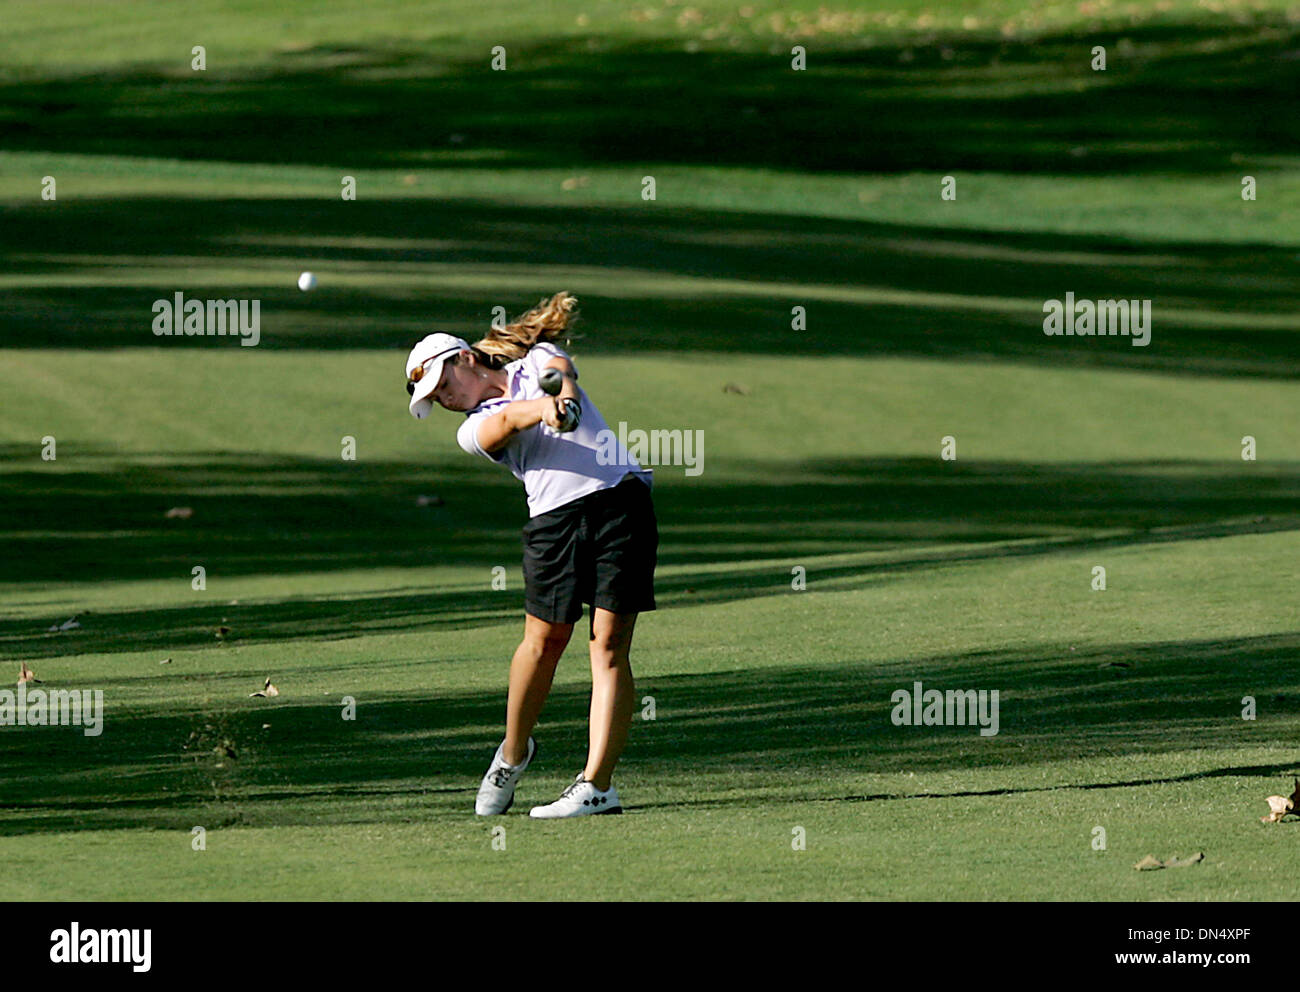 Nov 14, 2006; Rancho Cucamonga, CA, USA; GOLF: Carlsbad's RACHEL MORRIS, 14, blasts a shot off the fairway towards the putting green on hole #17 at the high school golf state championships at the Red Hill Country Club.  Morris shot a 75 placing her in third place overall.  Mandatory Credit: Photo by Sean DuFrene/SDU-T/ZUMA Press. (©) Copyright 2006 by SDU-T - Stock Image